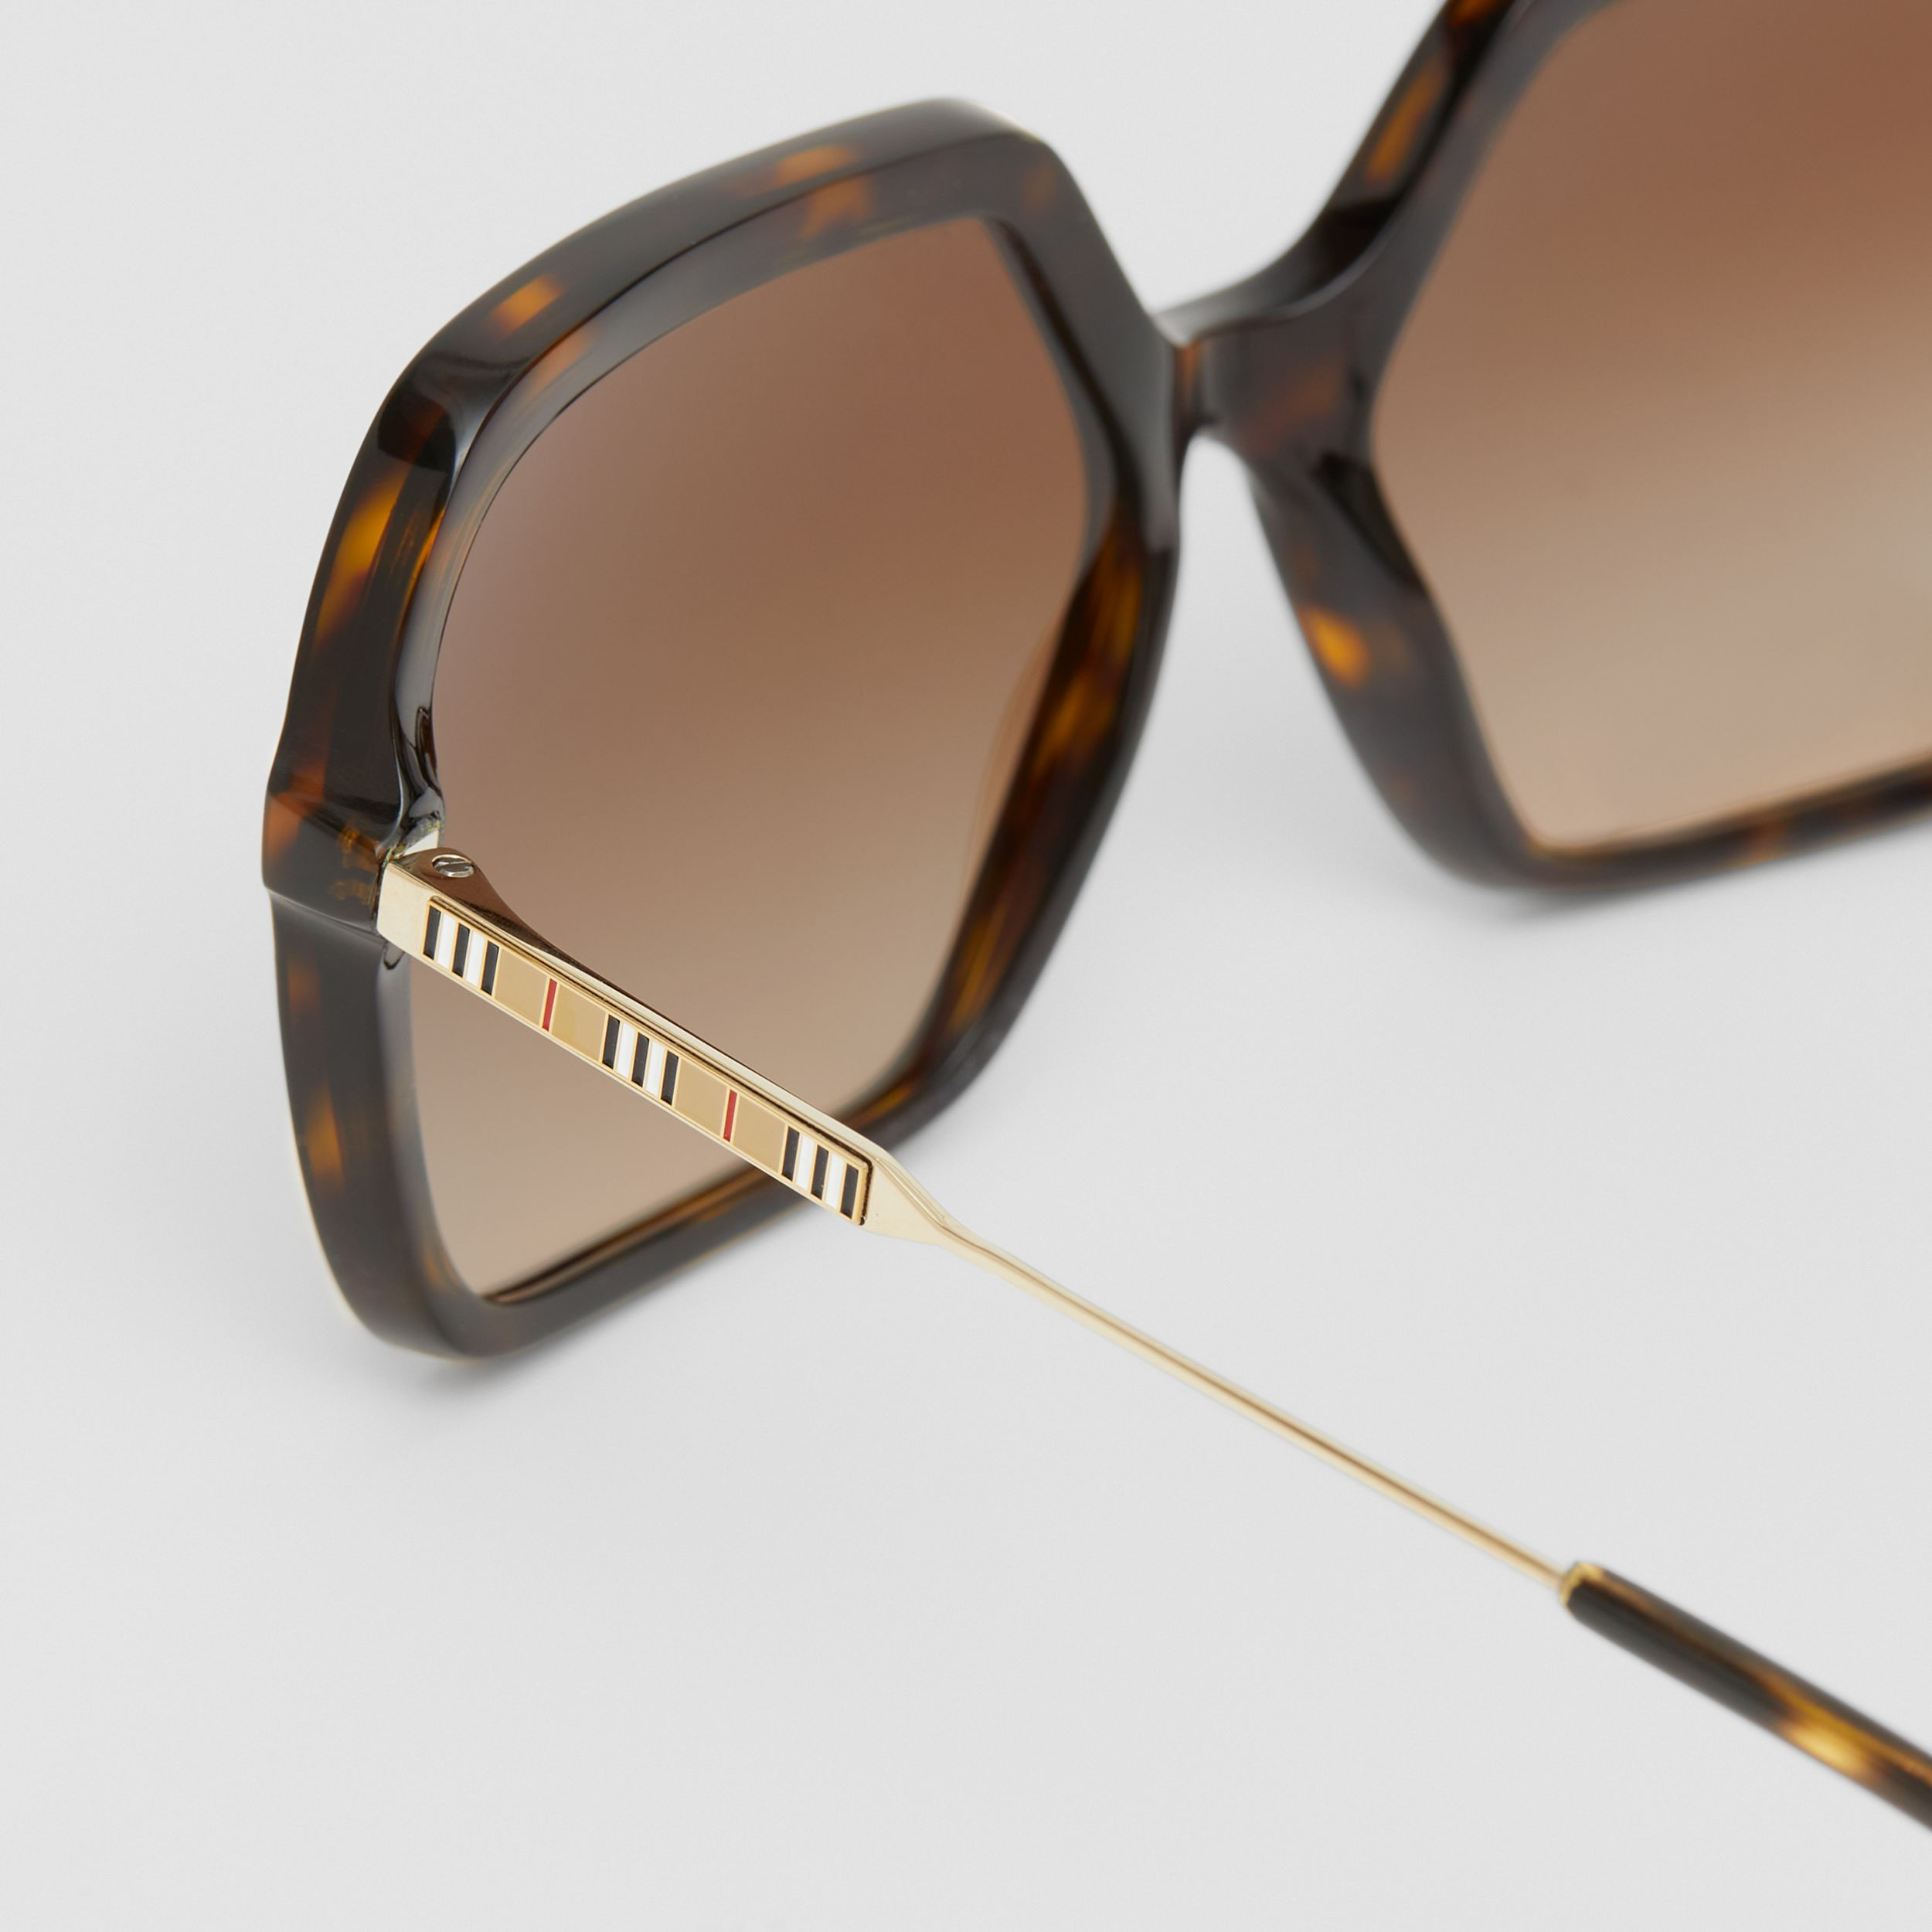 Oversized Square Frame Sunglasses in Tortoiseshell - Women | Burberry - 2